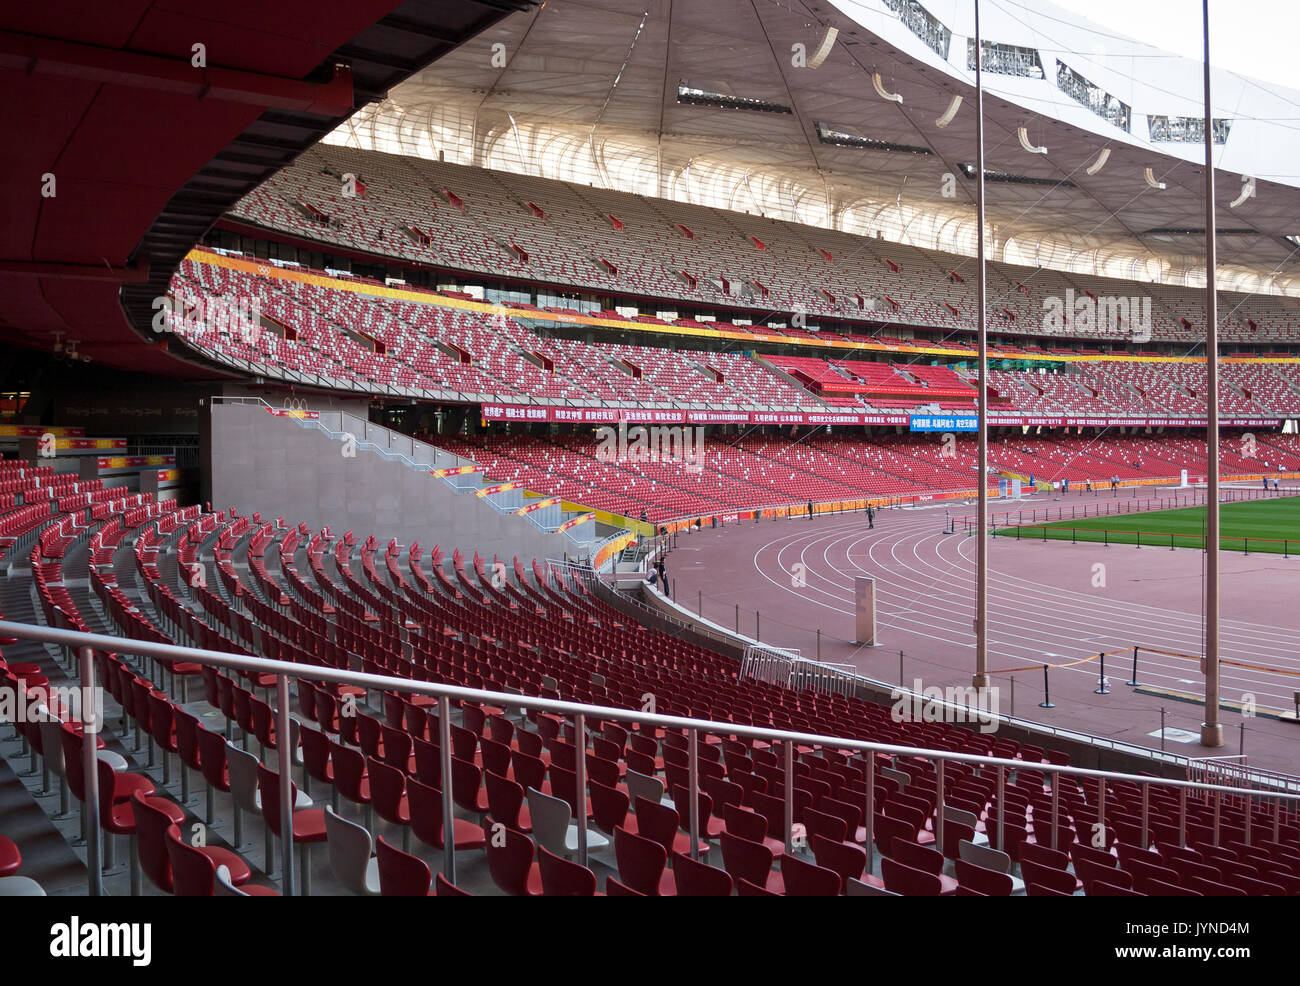 Olympic stadium beijing track stock photos olympic for The bird s nest stadium